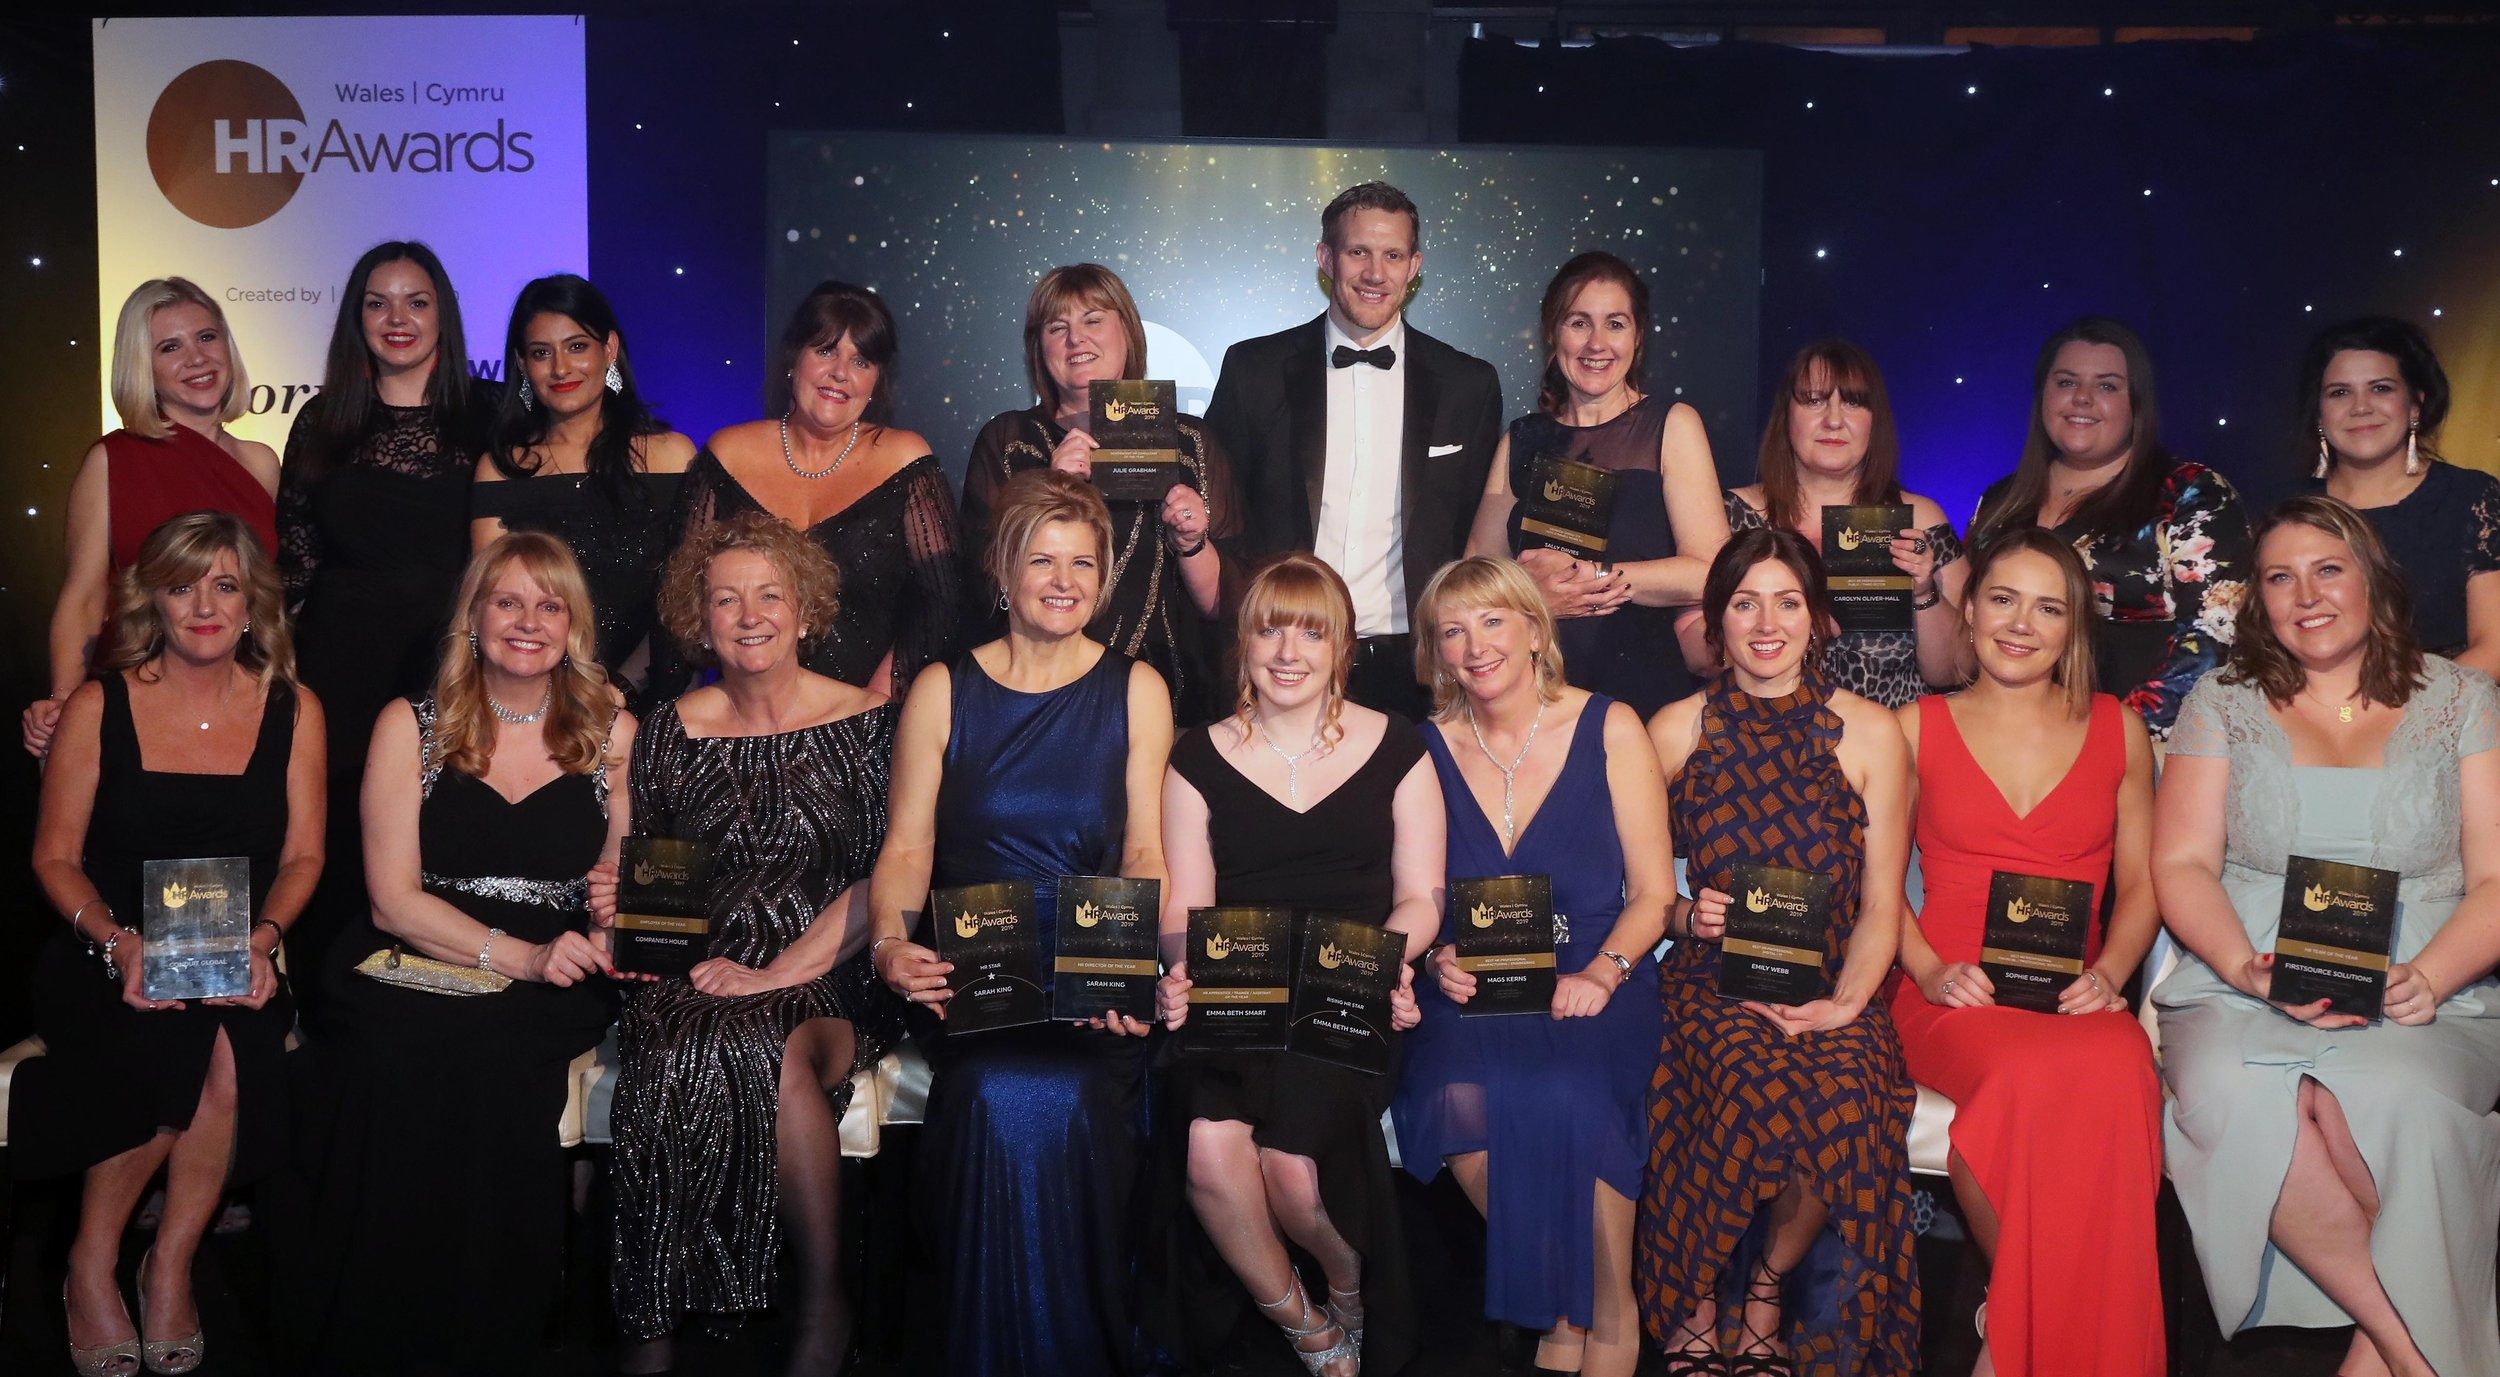 Wales HR Awards Winners 2019.jpg